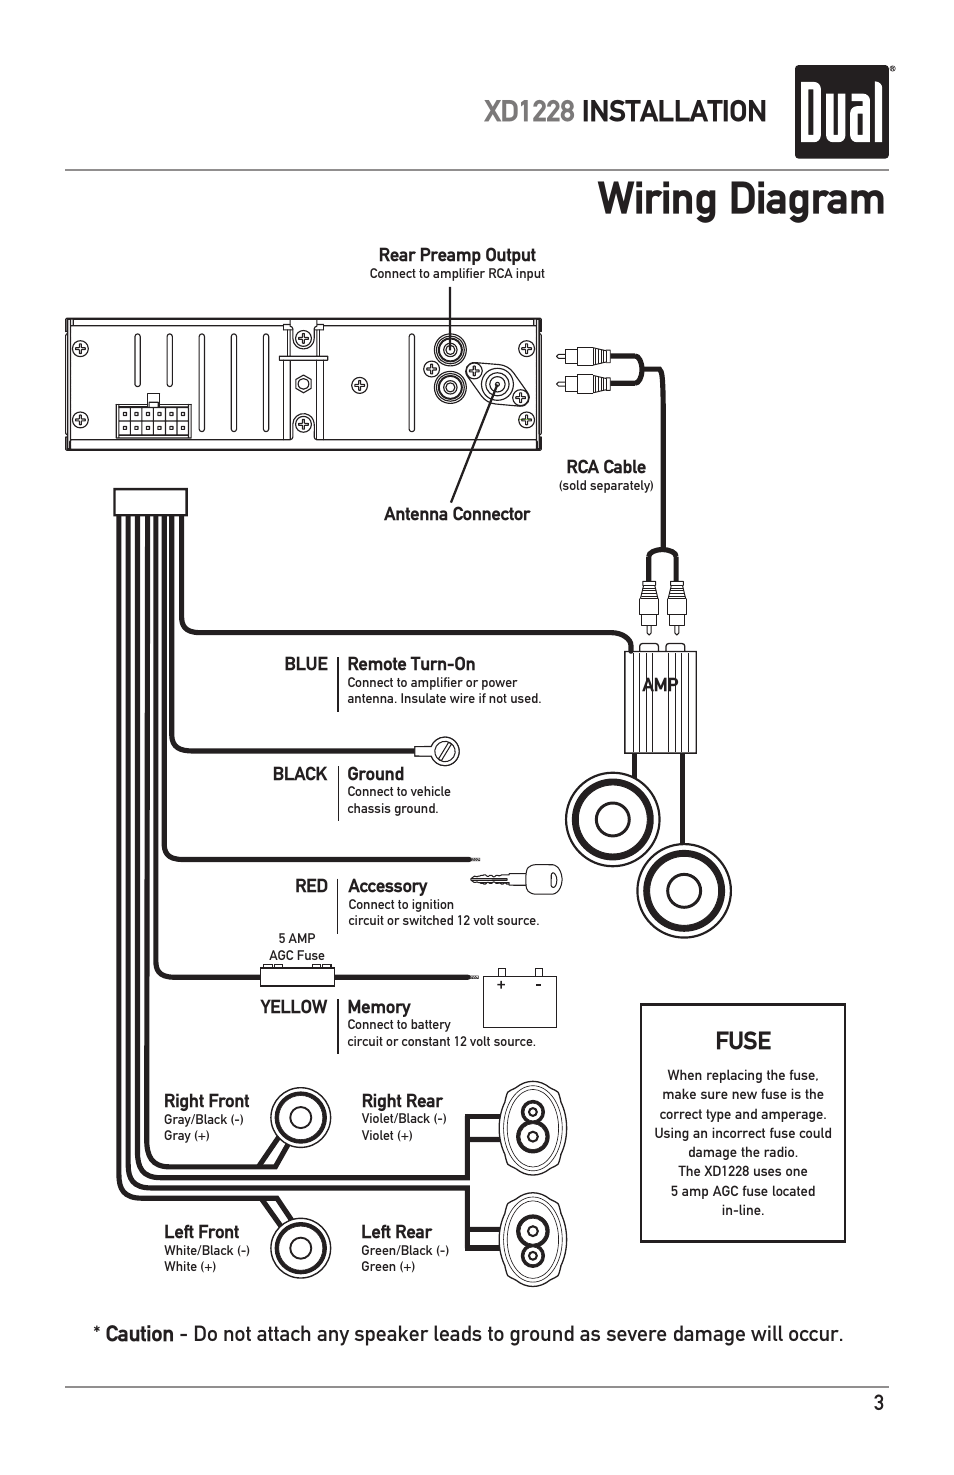 Rockville Amp Wiring Diagram